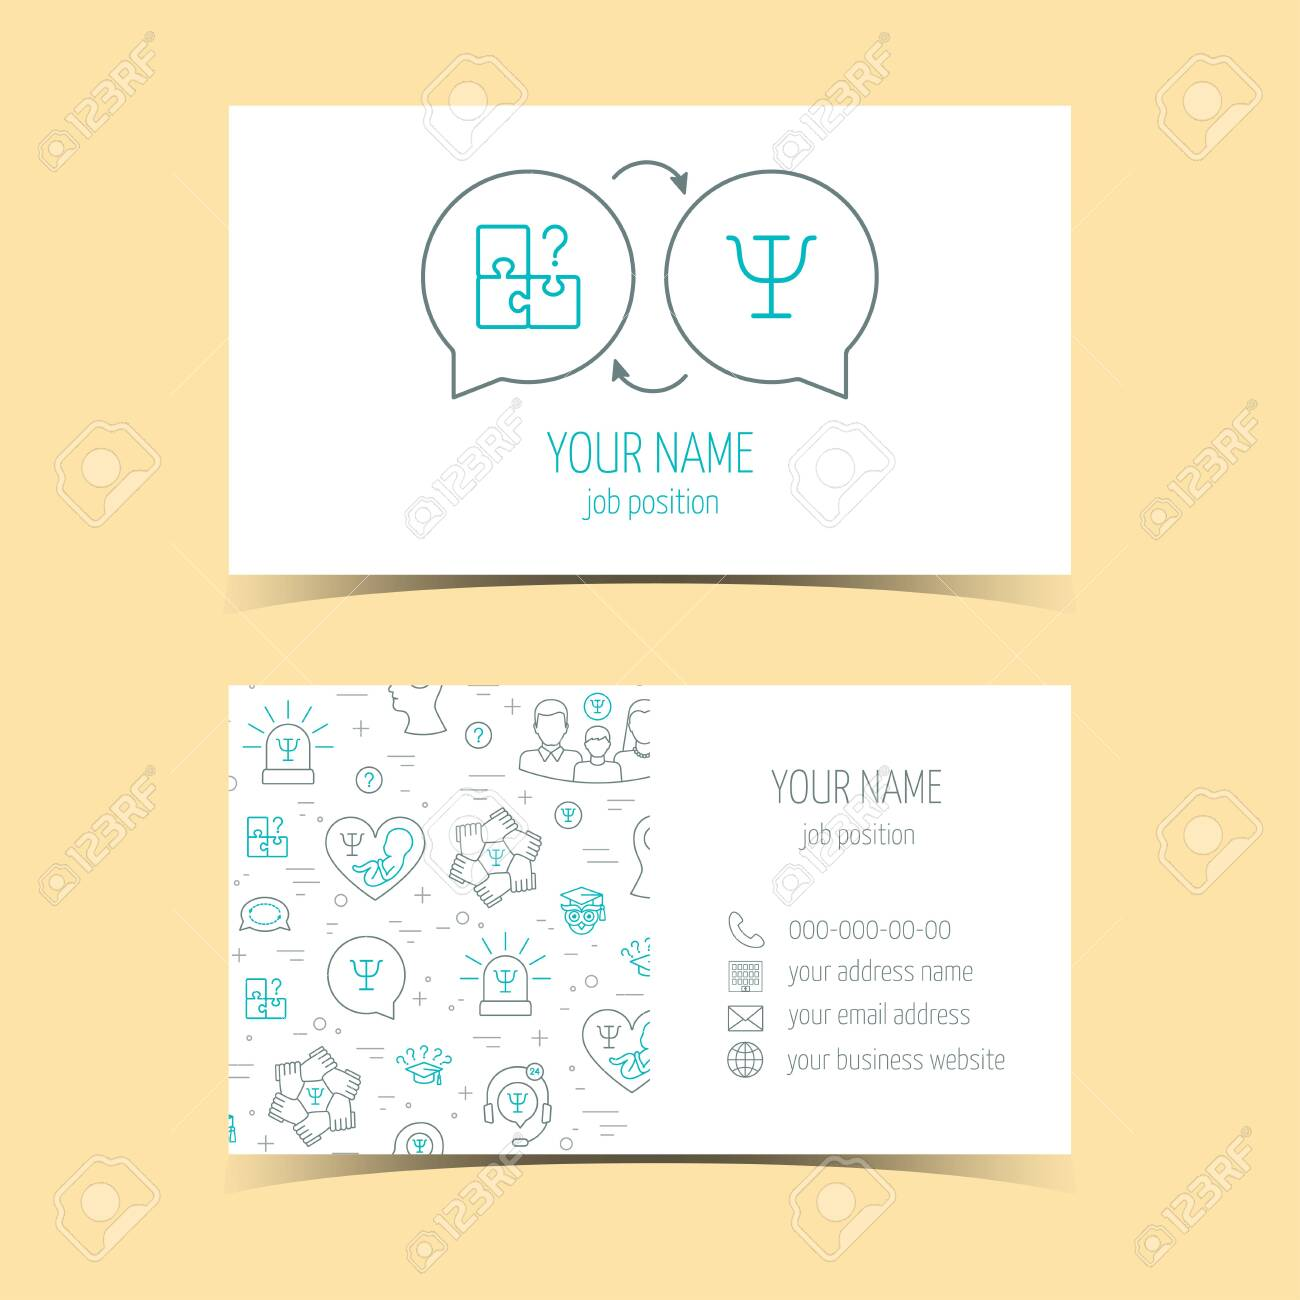 Business Cards For Psychology Help Promotional Products Line Royalty Free Cliparts Vectors And Stock Illustration Image 124558955